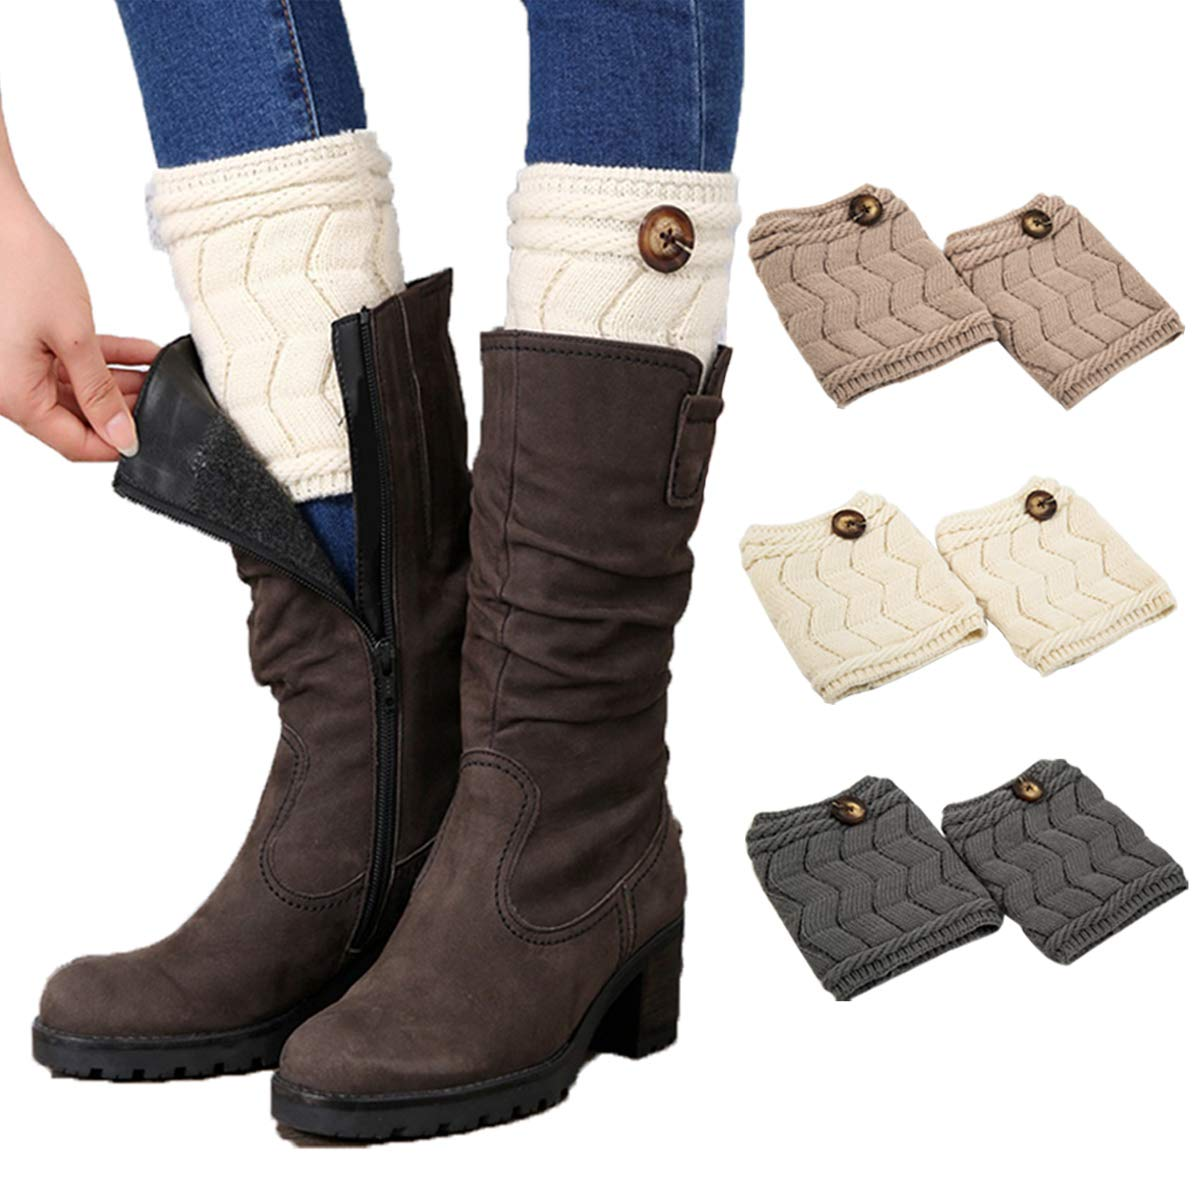 Women Bohemis Crochet Knitted Long Leg Warmers Spring Patchwork Knee High Warm Boot Socks Leg Warmers Underwear & Sleepwears